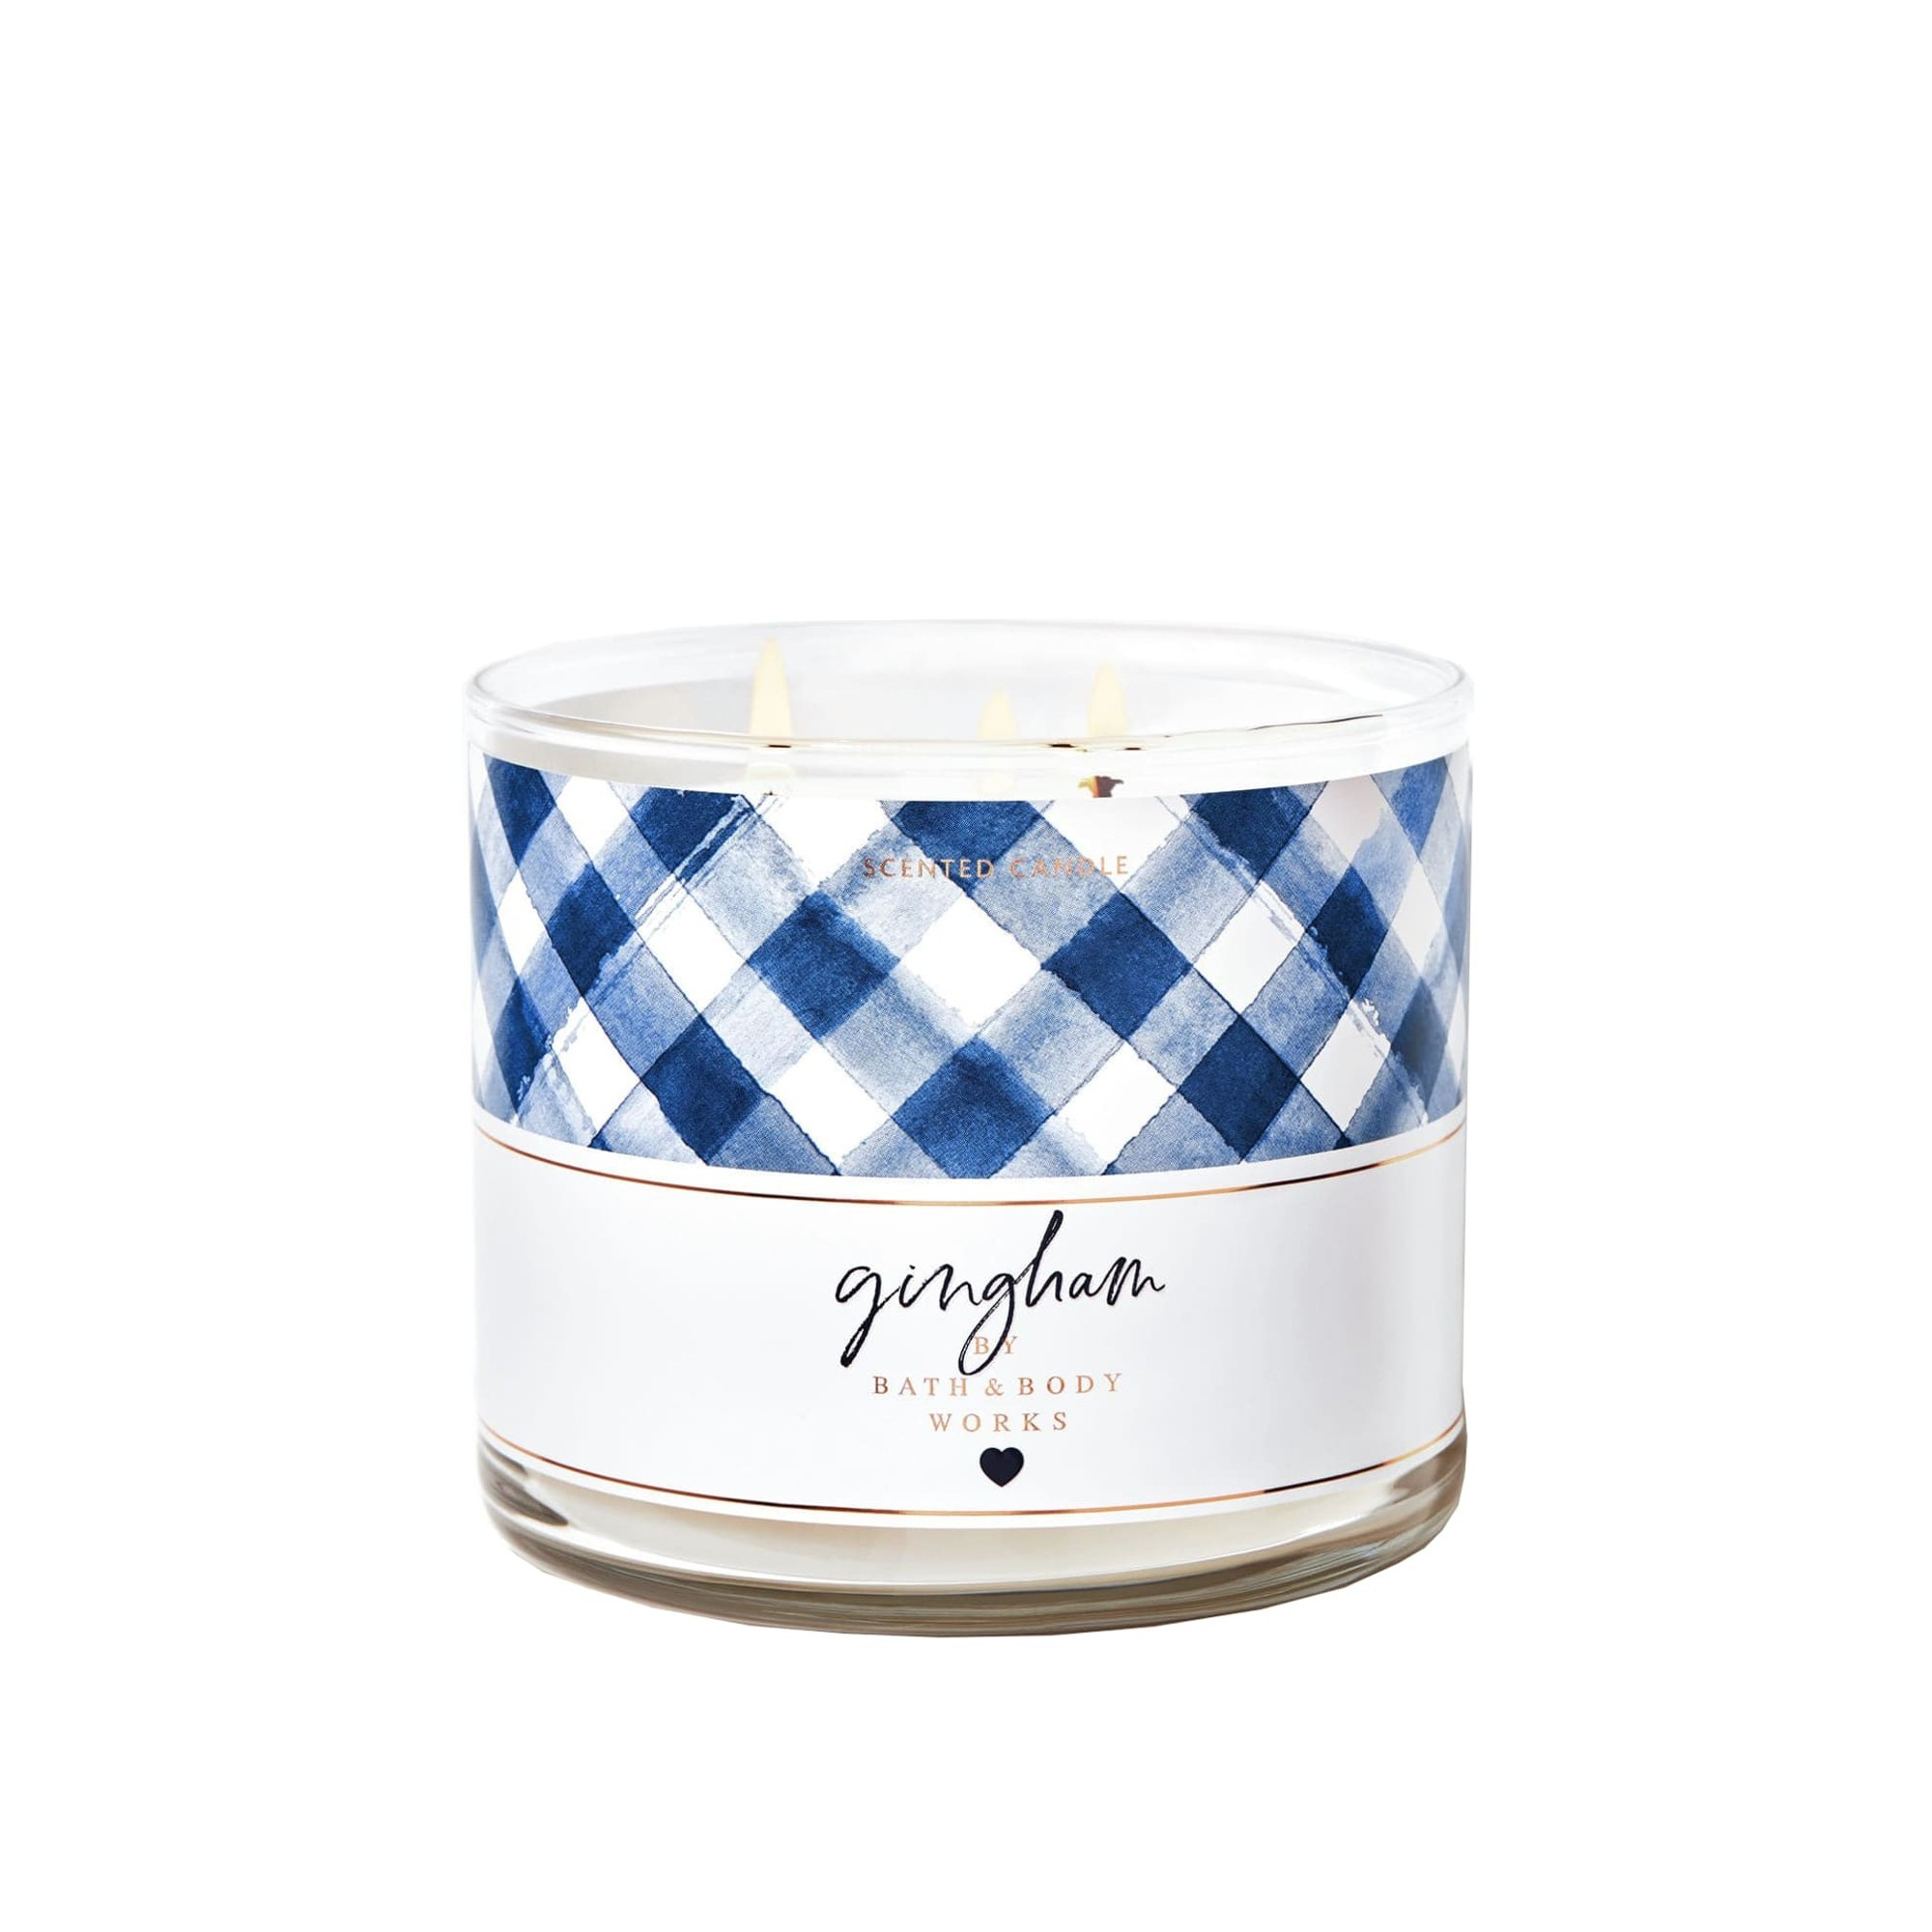 Bath & Body Works Gingham 3 Wick Scented Candle